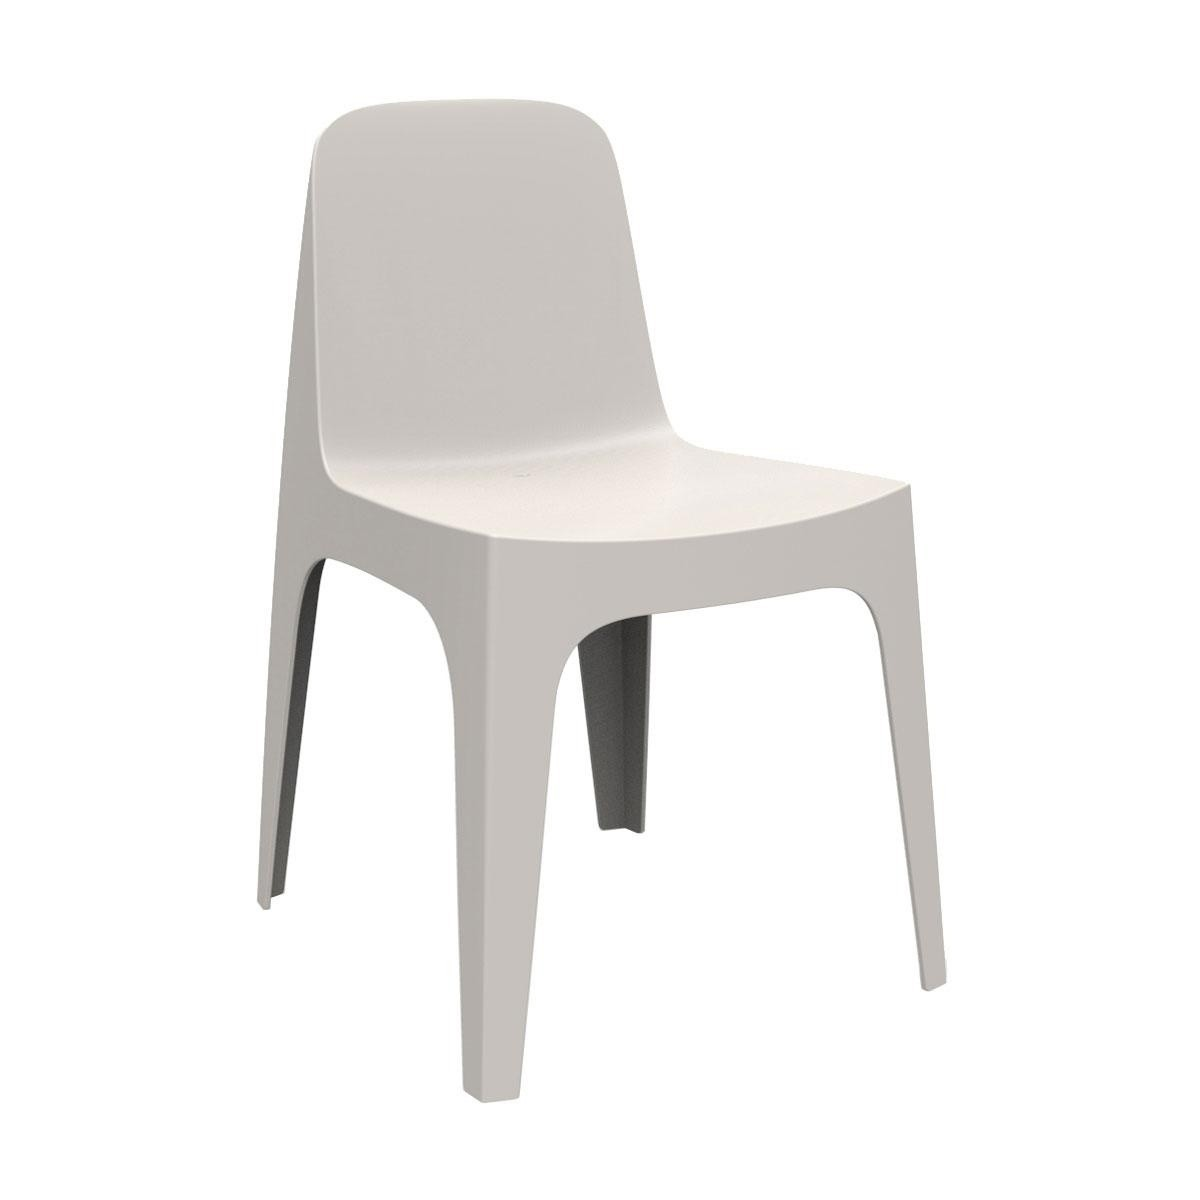 Wondrous Solid Chair Inzonedesignstudio Interior Chair Design Inzonedesignstudiocom